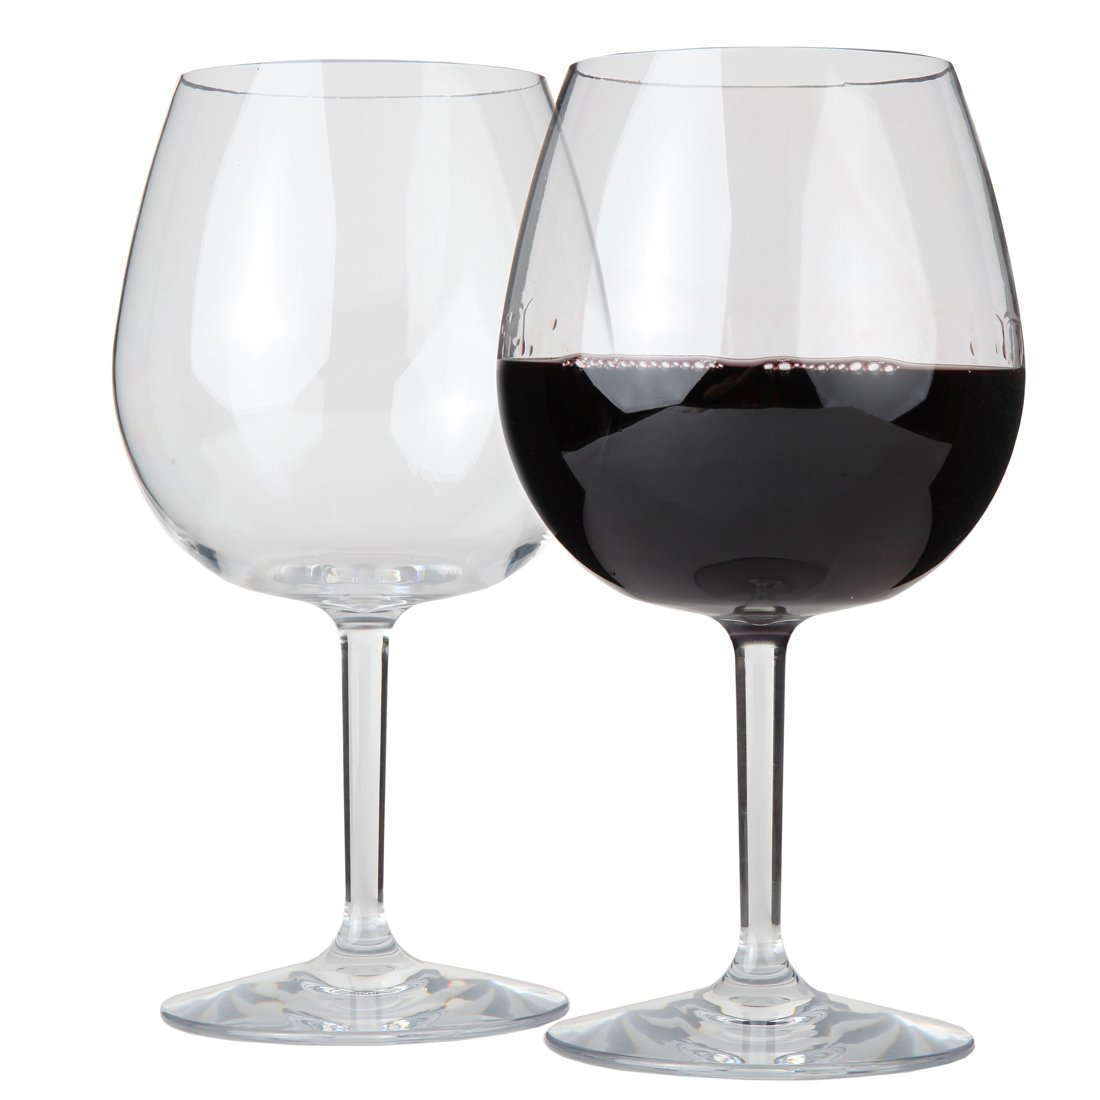 Lily's Home Unbreakable Pinot Noir and Burgundy Red Wine Glasses, Made of Shatterproof Tritan Plastic, Ideal for Indoor and Outdoor Use, Reusable and Dishwasher-Safe, Crystal Clear (22 oz. Each, Set of 2)